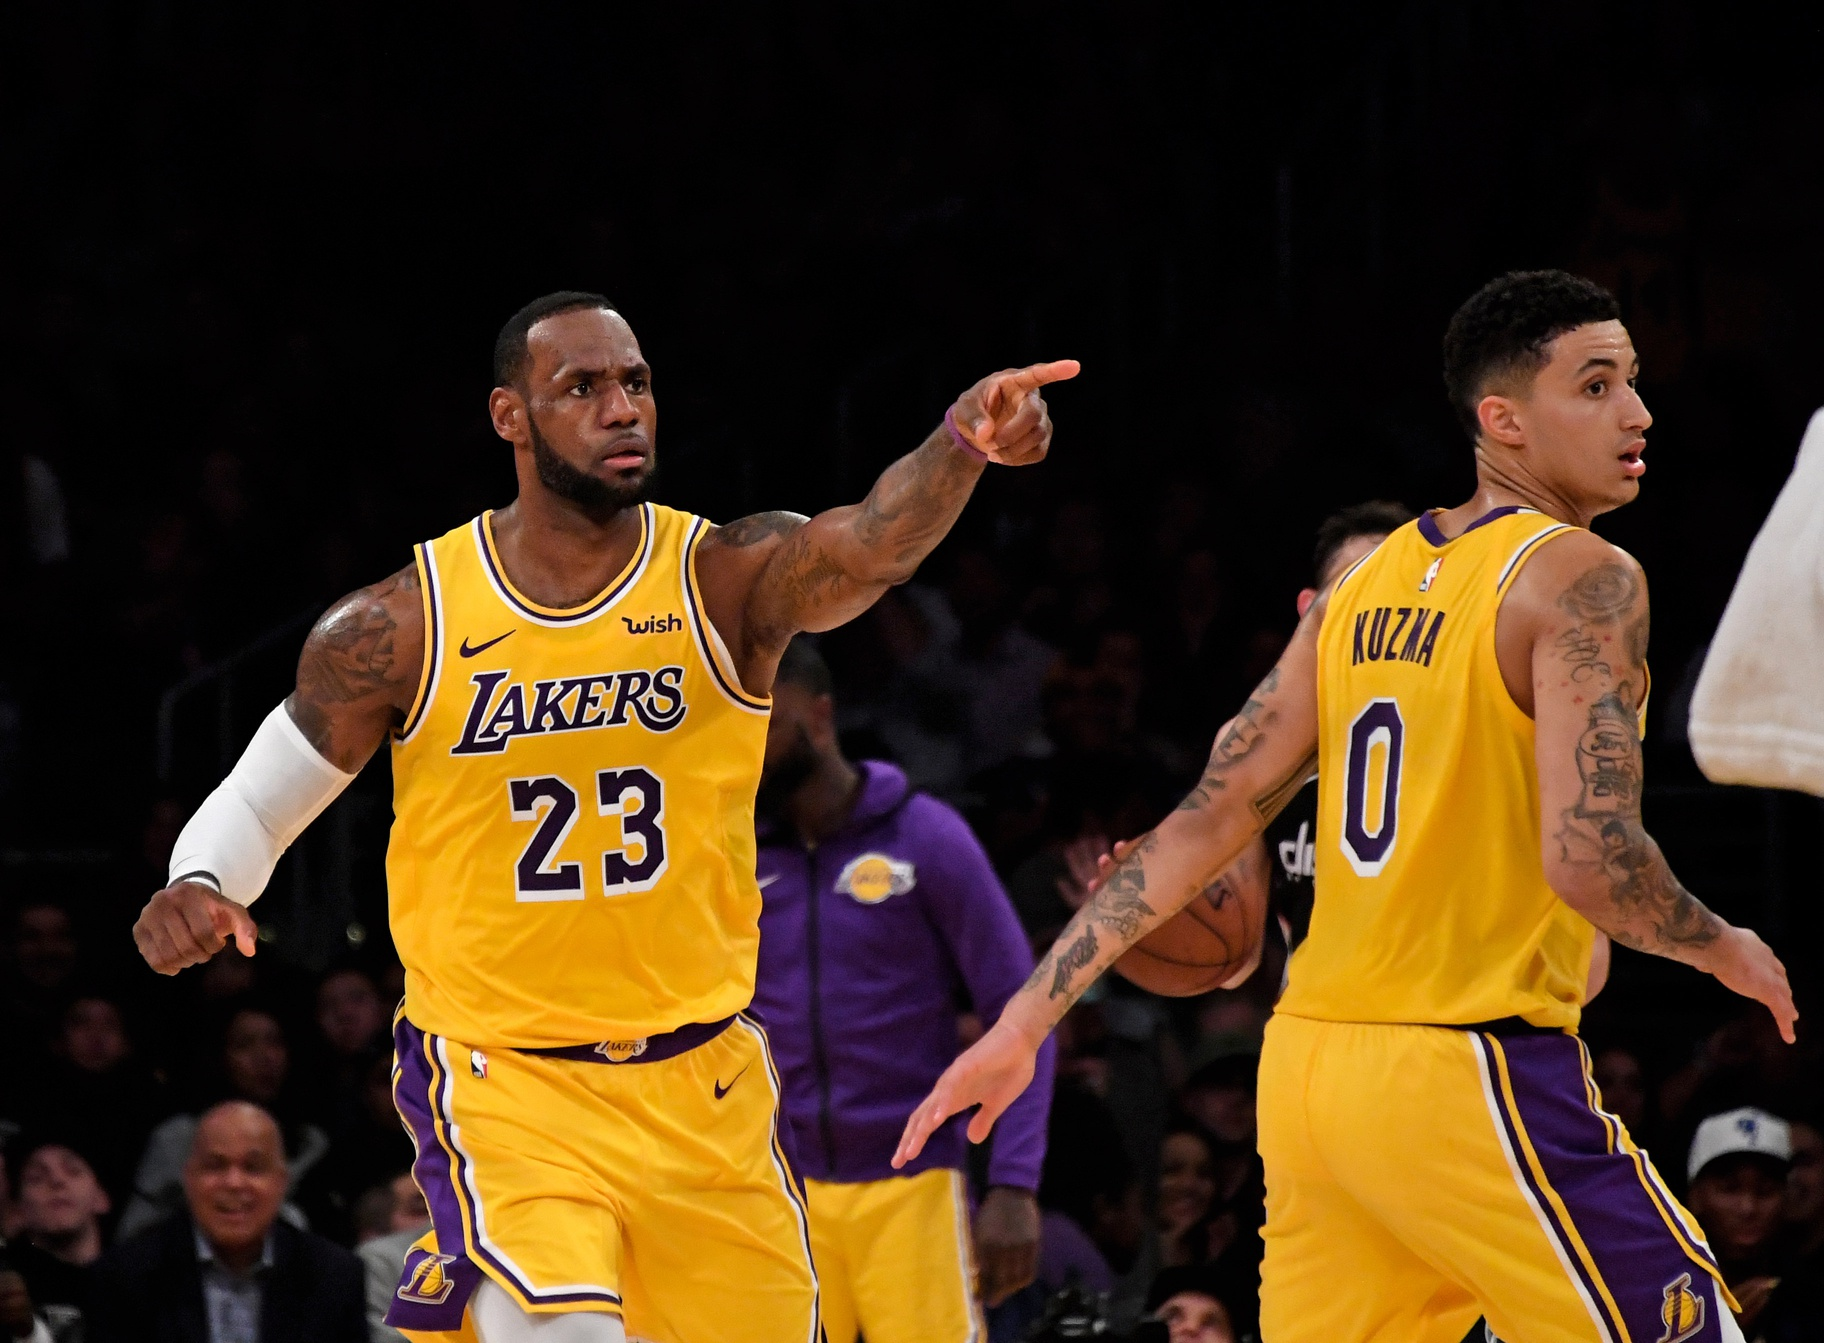 c1373a058cde LeBron leads Lakers past Wiz 124-106 for back-to-back wins